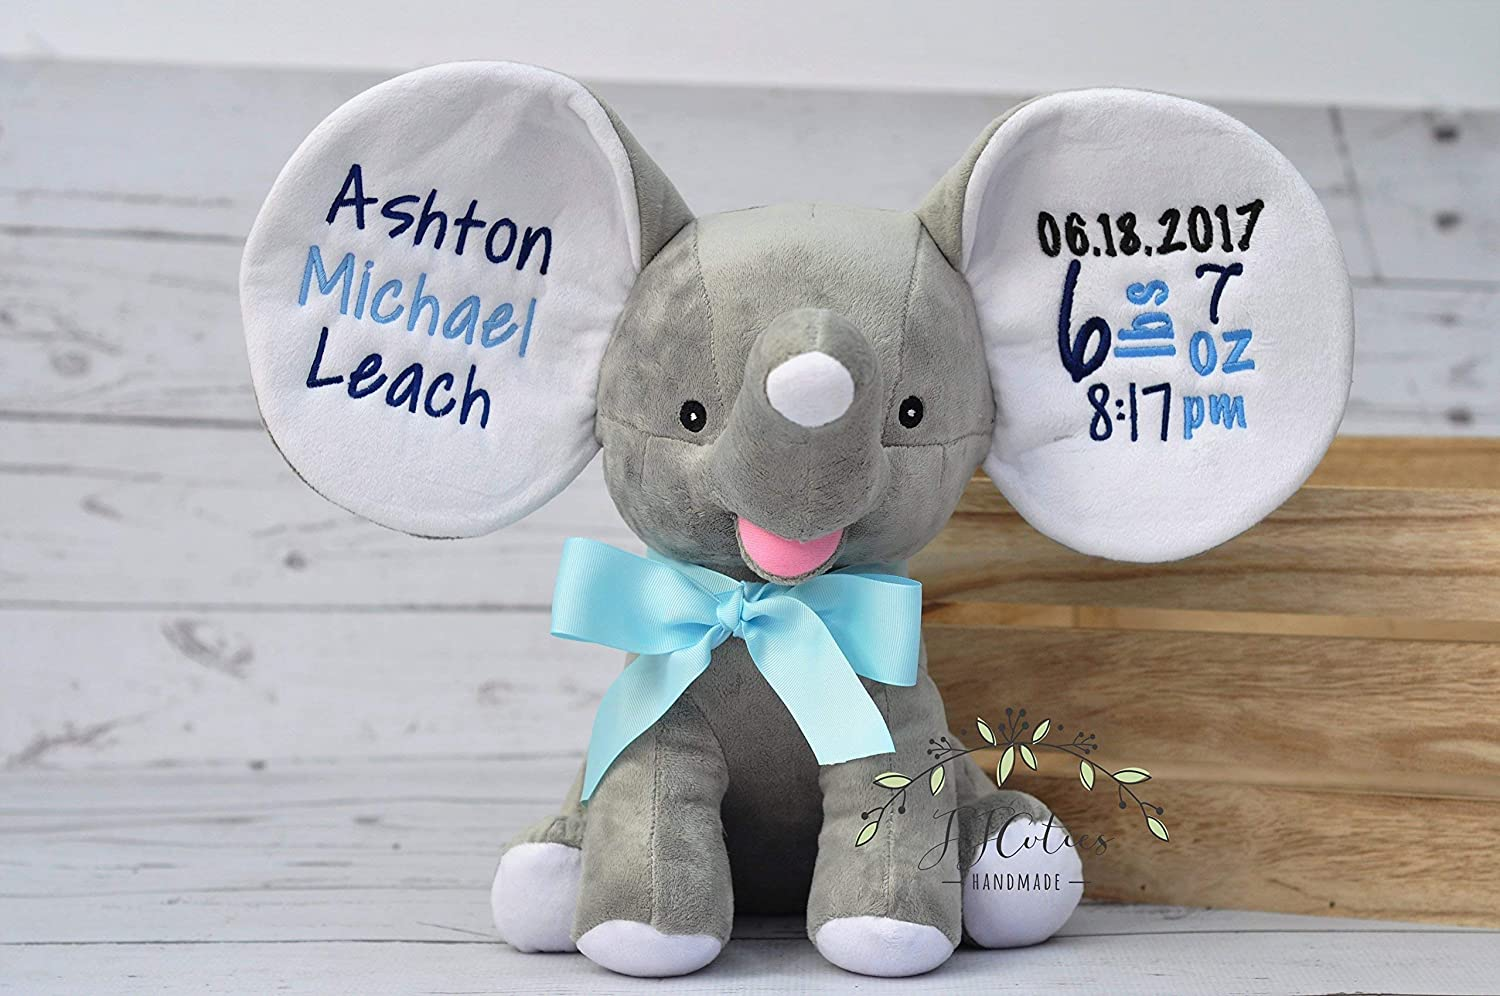 Cubbies Dumble Elephant-Personalized Birth Stat Elephant Gray Cubbies Cubby Animal-Personalized Stuffed Grey Elephant Cubbies Cubby